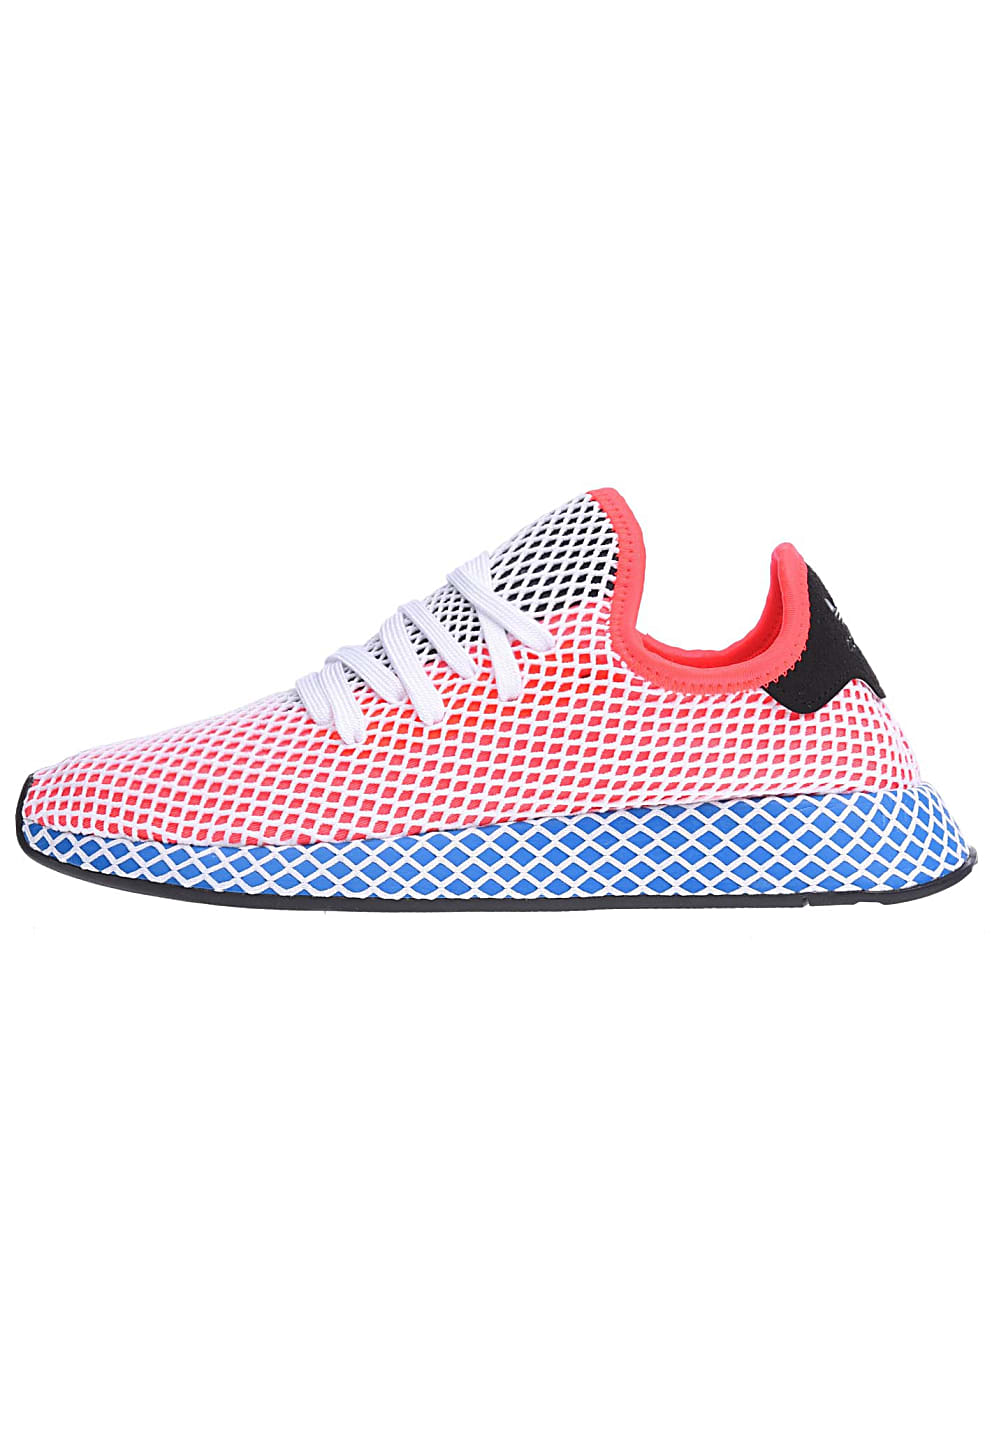 d860d01ed ADIDAS ORIGINALS Deerupt Runner - Sneakers for Men - Red - Planet Sports